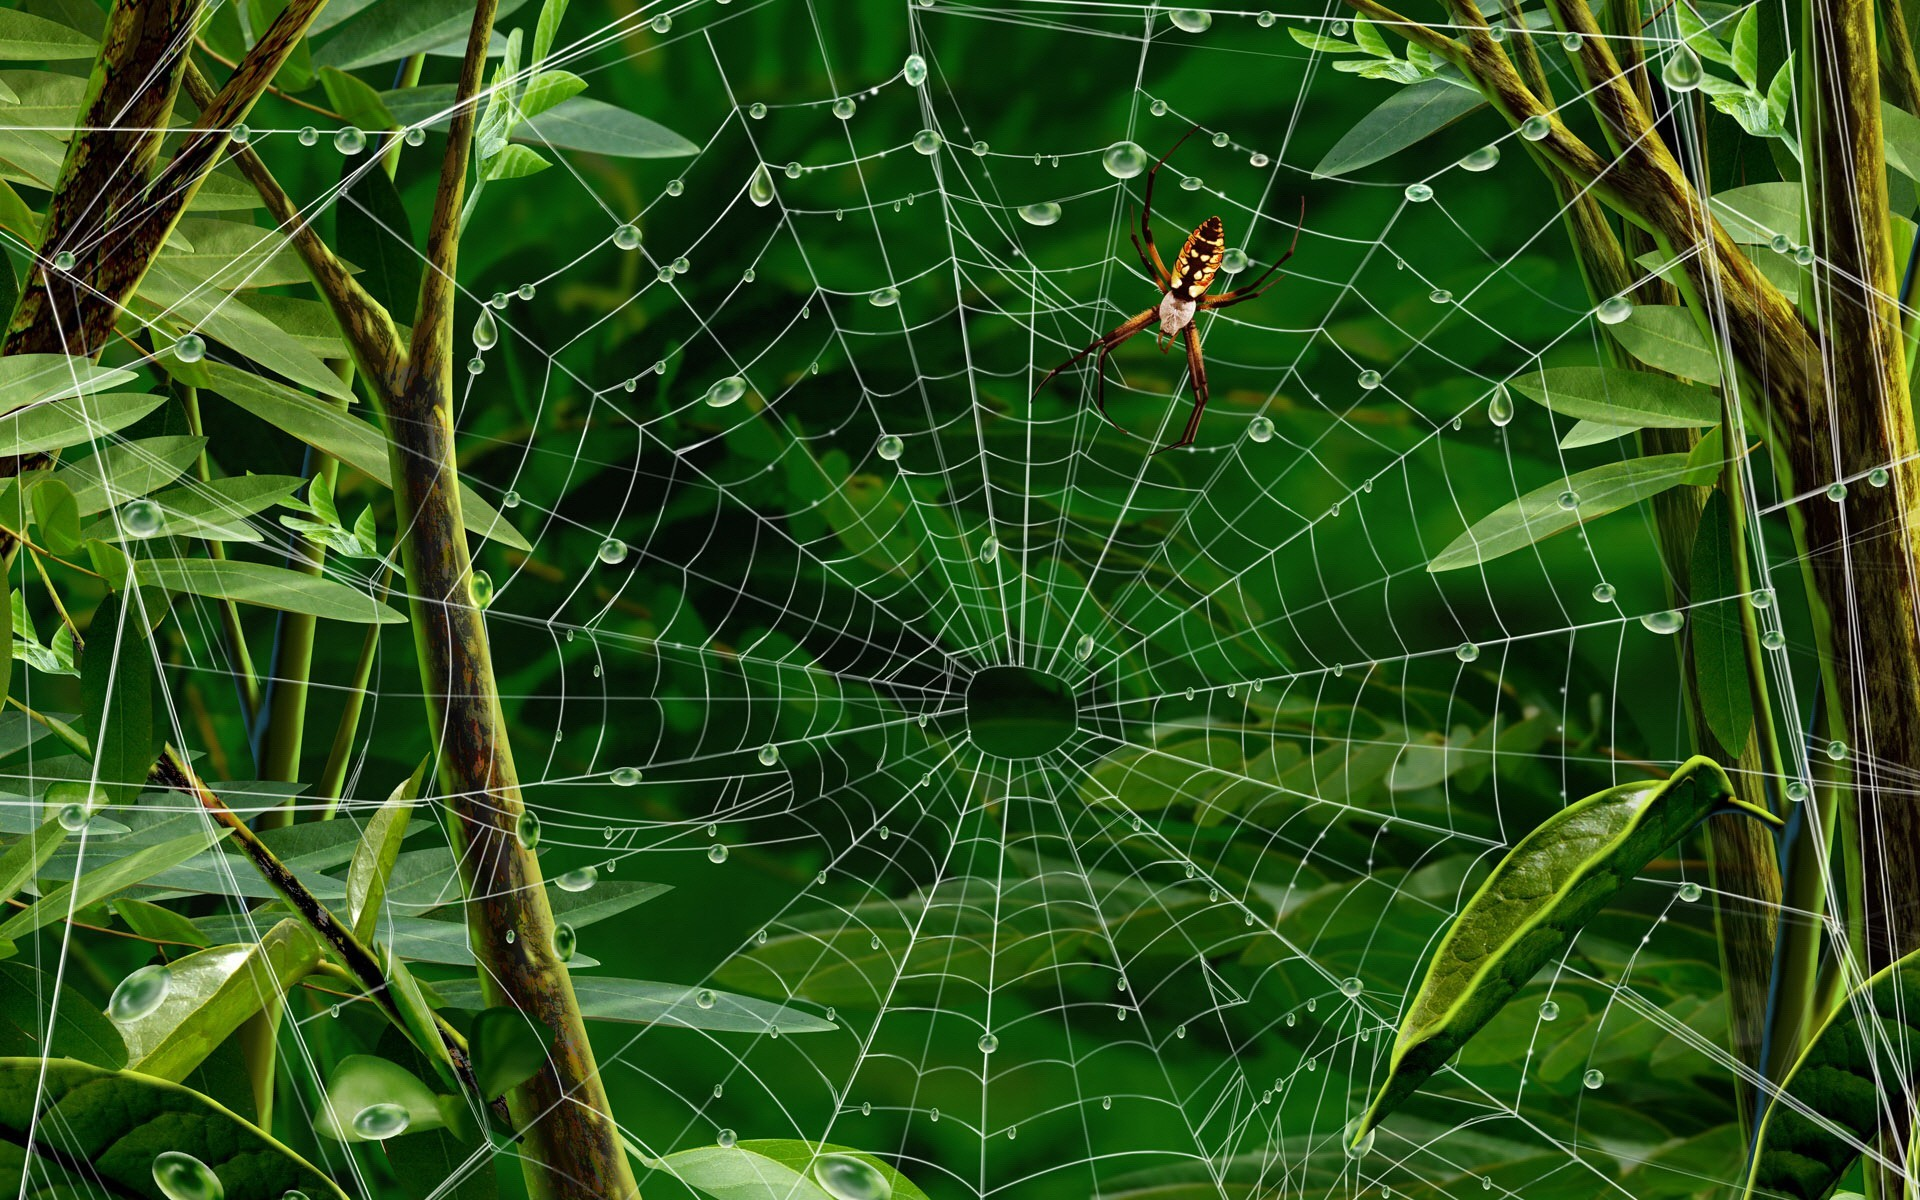 web spiders artwork HD Wallpaper